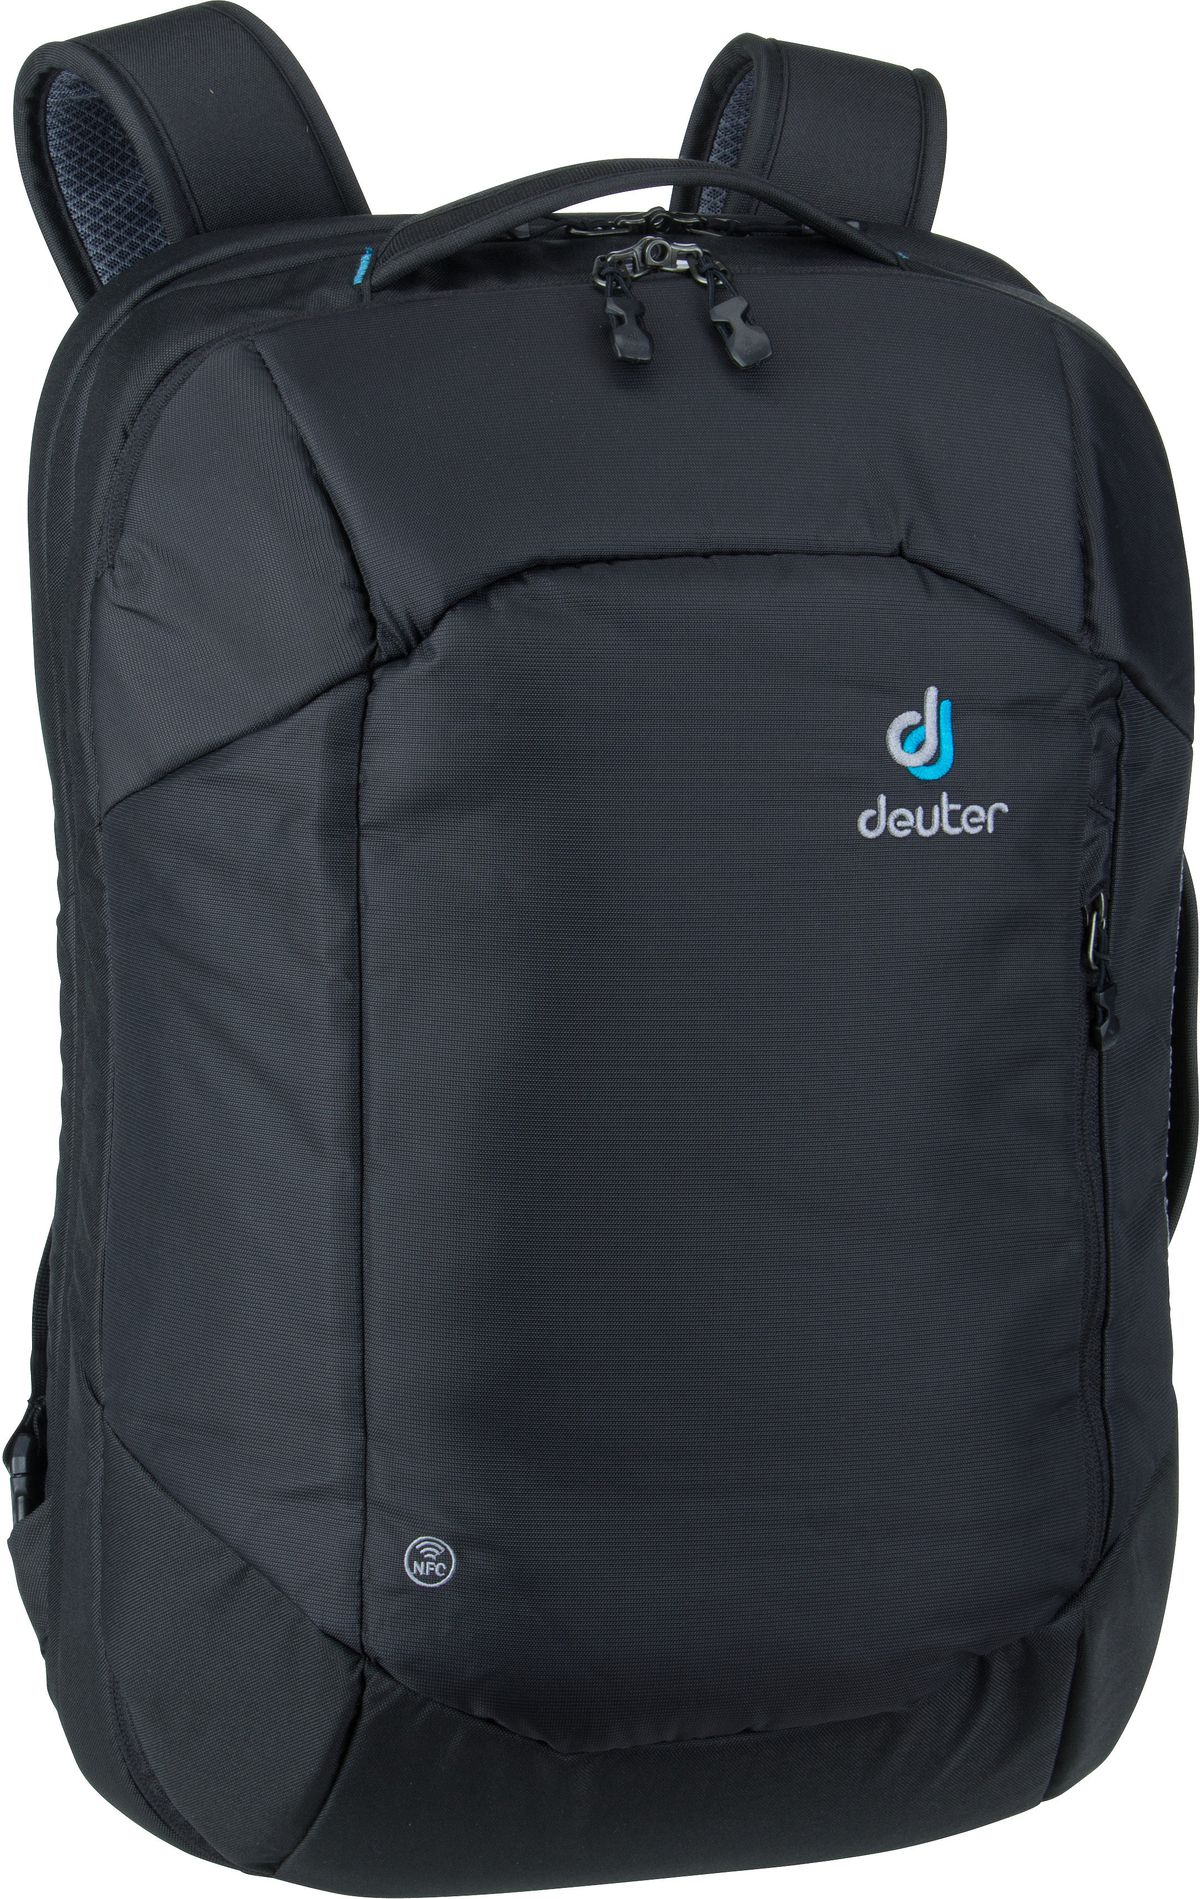 Laptoprucksack Aviant Carry On Pro 36 Black (36 Liter)